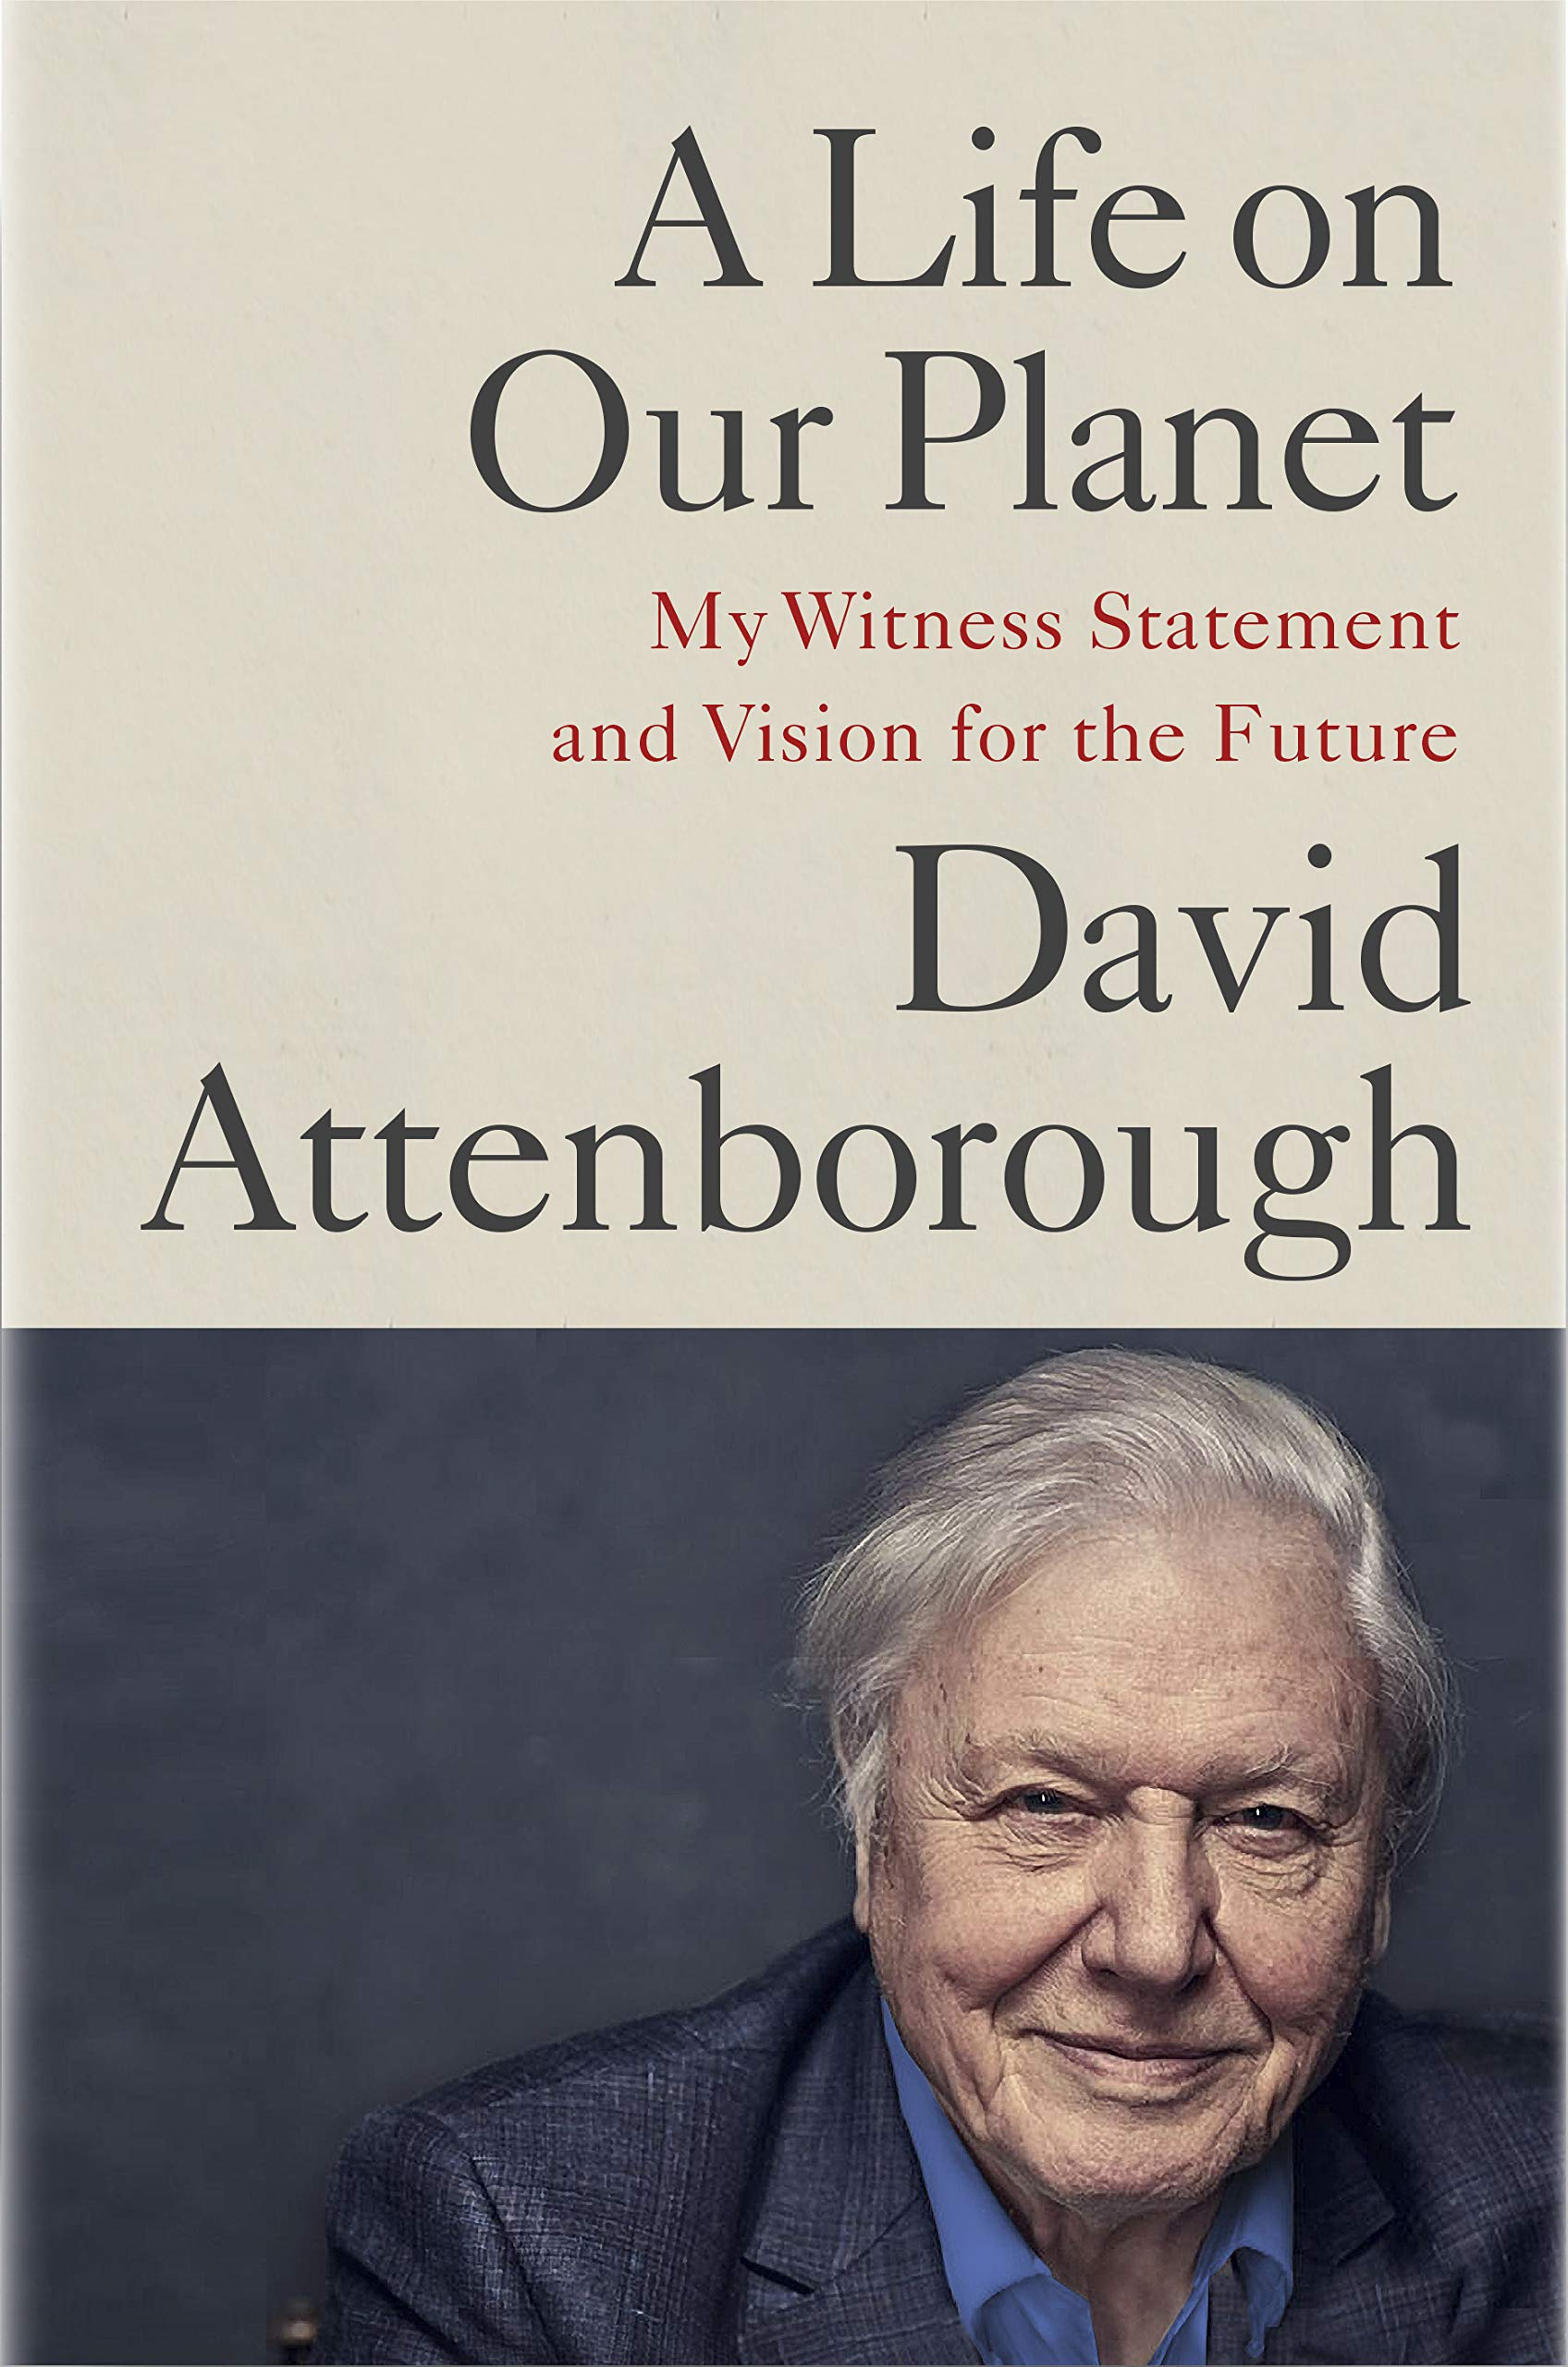 The Redwood Book Club: A Life on Our Planet: My Witness Statement and Vision for the Future by David Attenborough